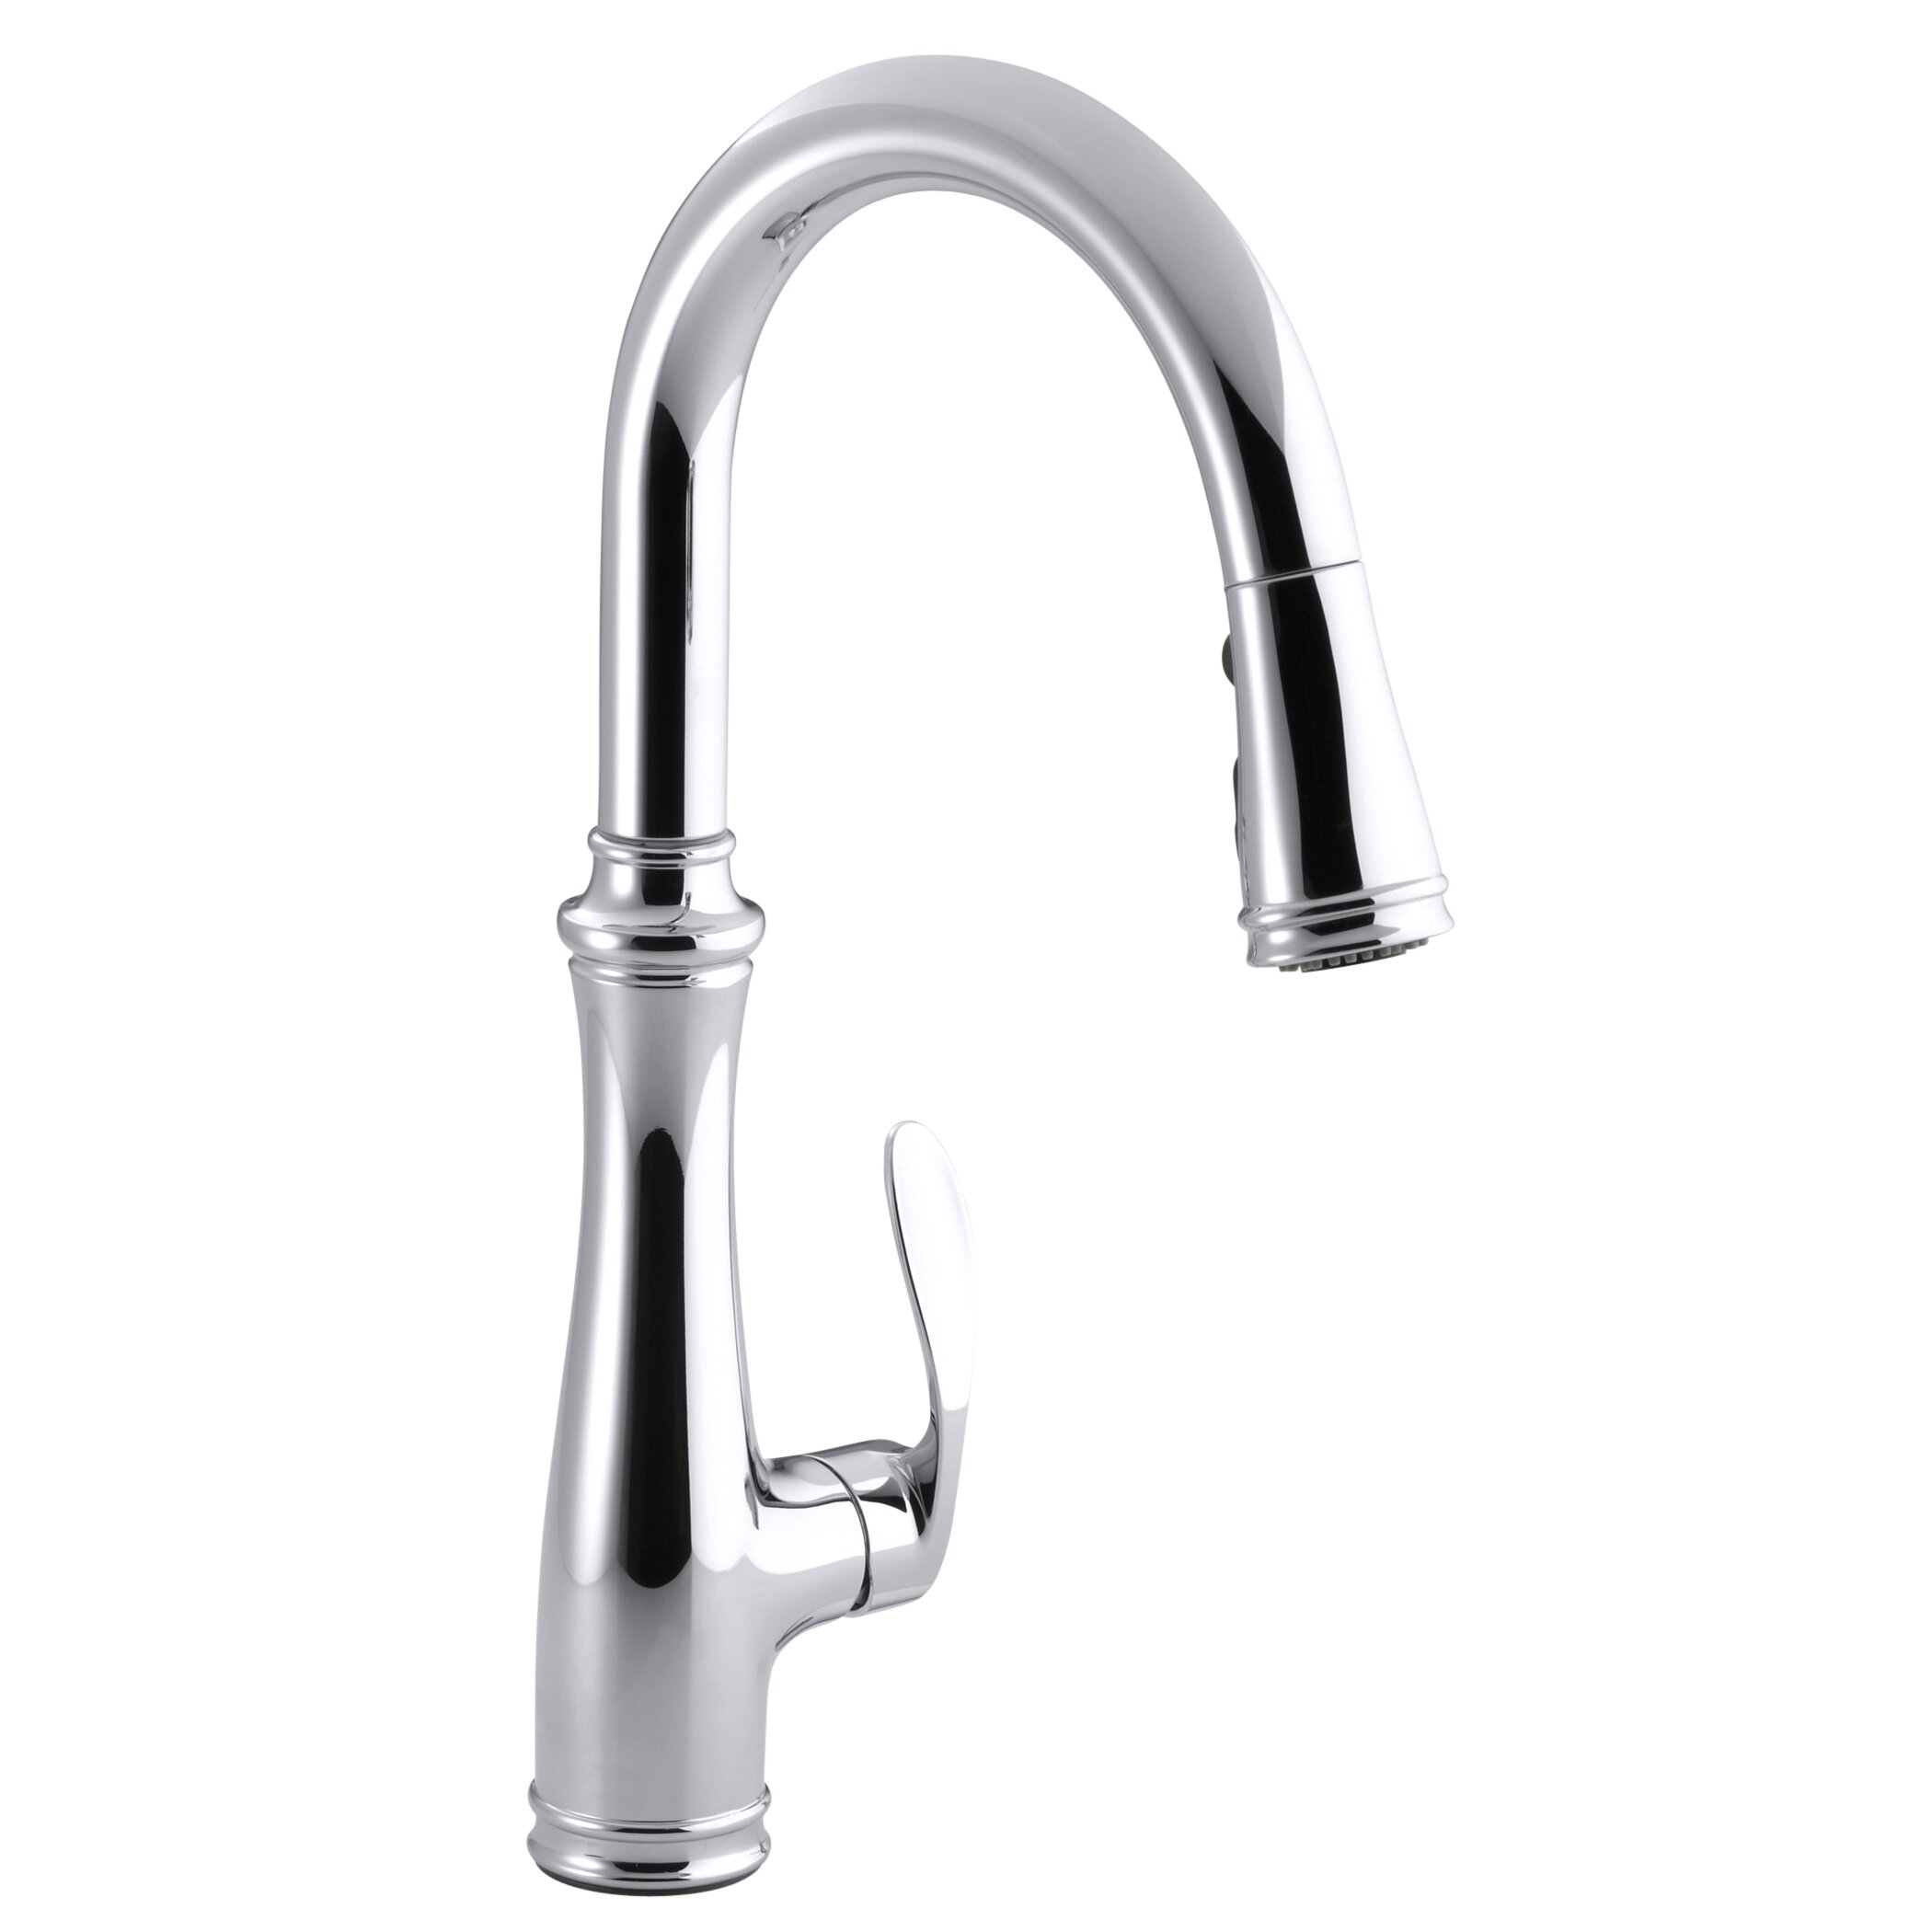 kohler c kohler kitchen faucet Bellera Kitchen Sink Faucet with 16 3 4 Pull Down Spout